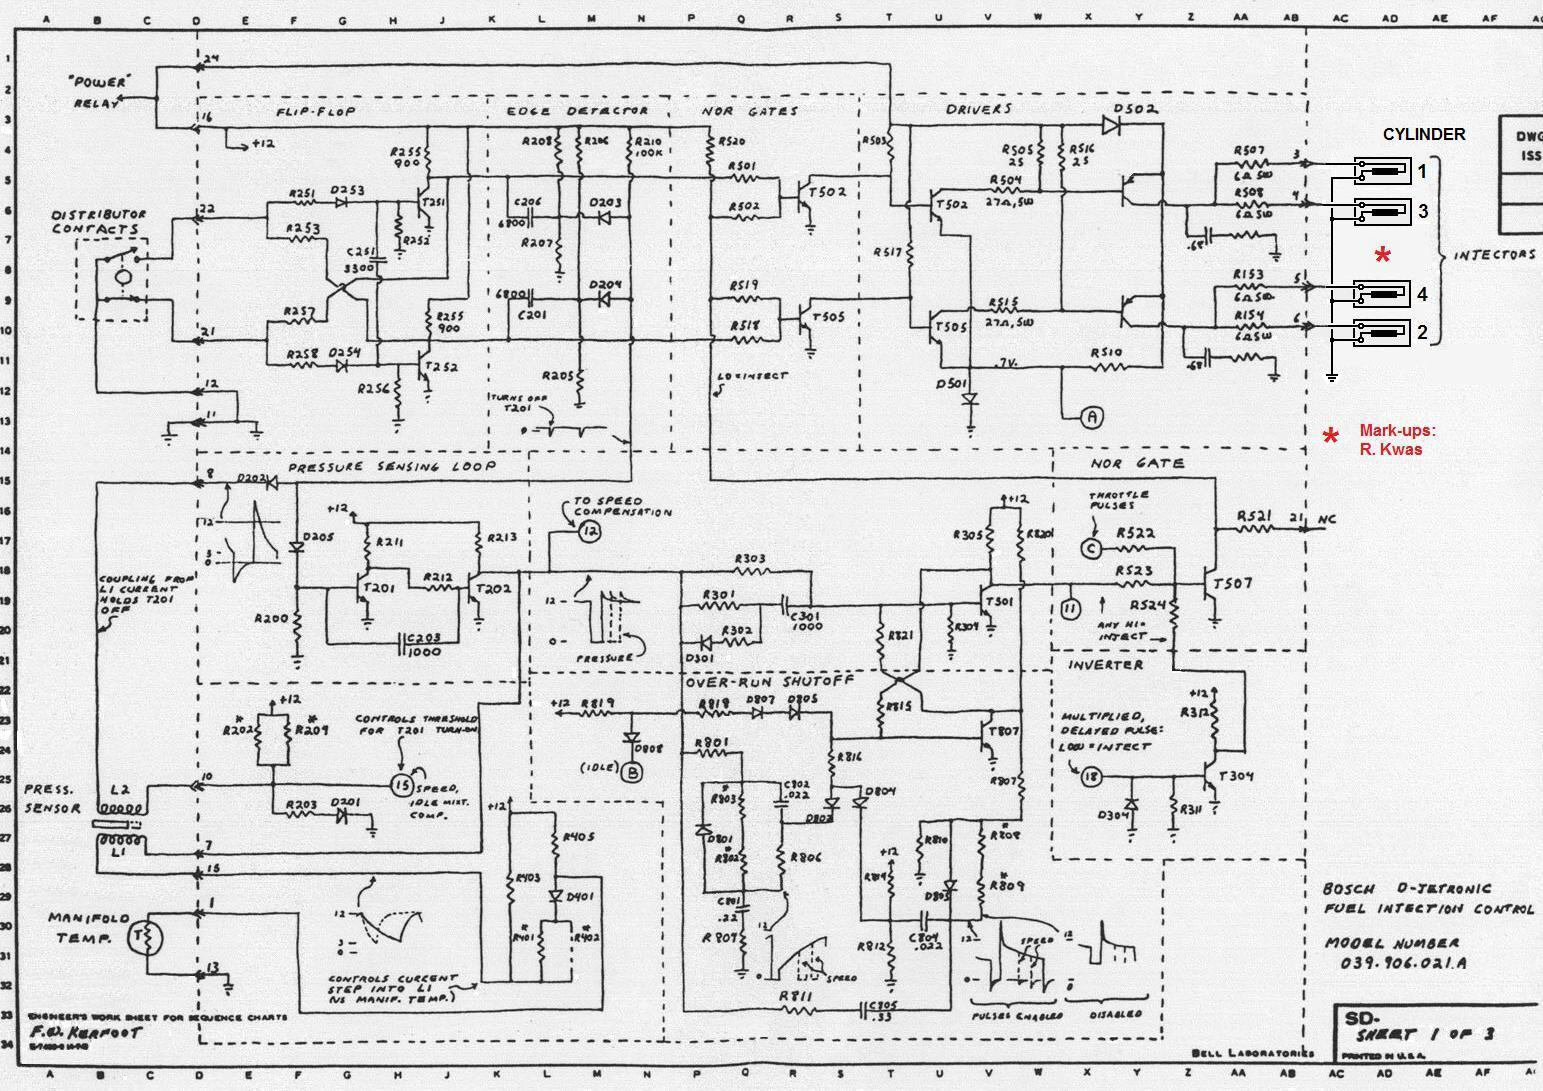 d jetronic_ecu_schematic1_touchedup diagrams 1477991 porsche 914 wiring diagram pelican parts fuse box diagram 1975 porsche 914 at crackthecode.co